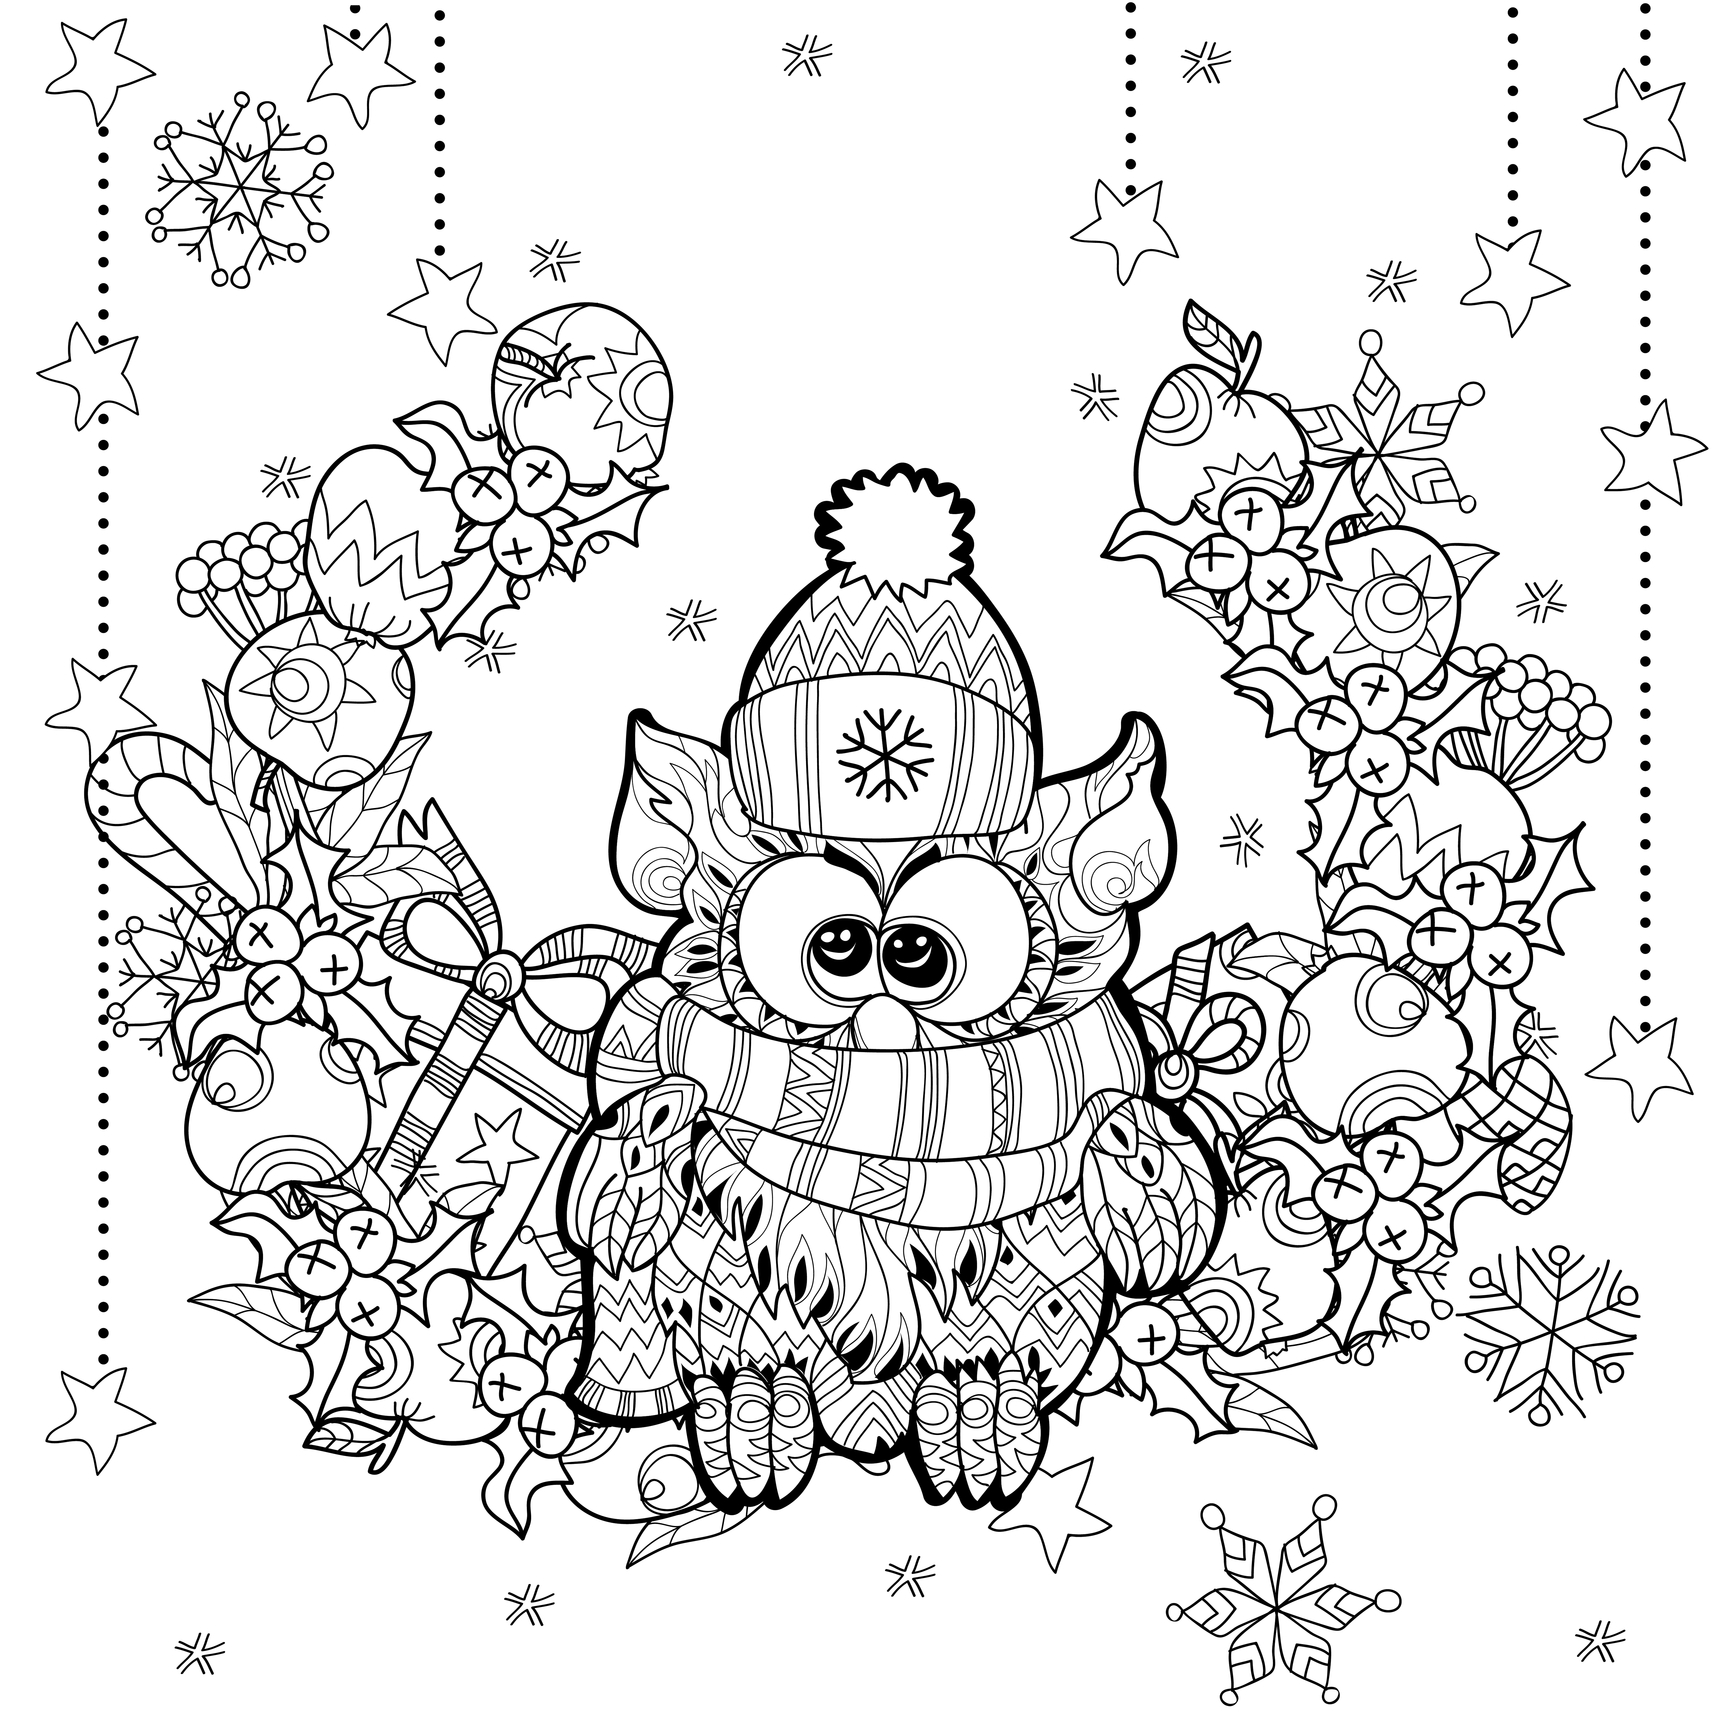 christmas coloring pages for adults coloring zentangle christmas owl by irina yazeva Owl Coloring Pages Christmas Color by Number  Christmas Owl Coloring Page